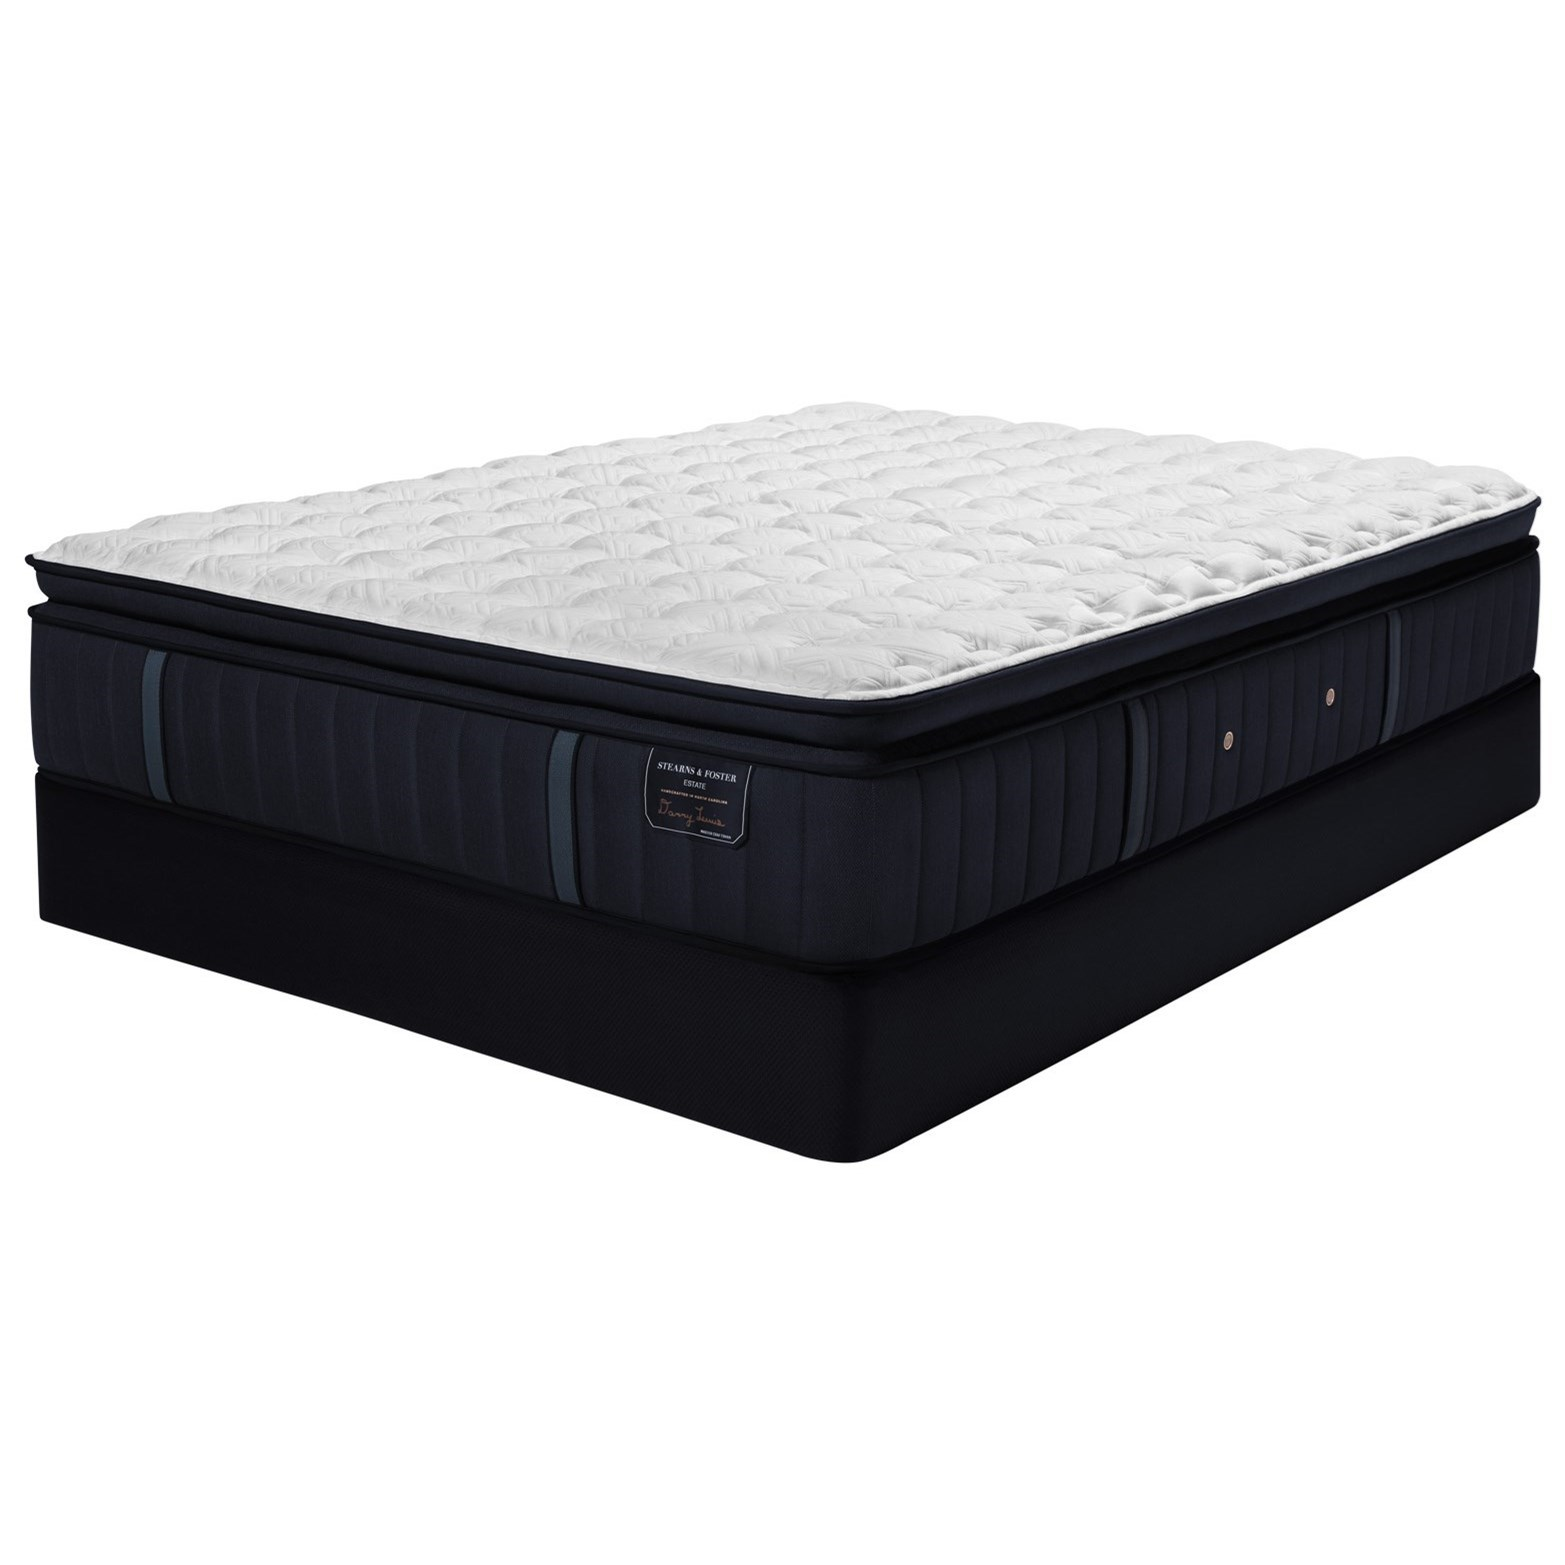 "Hurston ES2 Luxury Plush EPT Twin XL 14 1/2"" Luxury Mattress Set by Stearns & Foster at Prime Brothers Furniture"